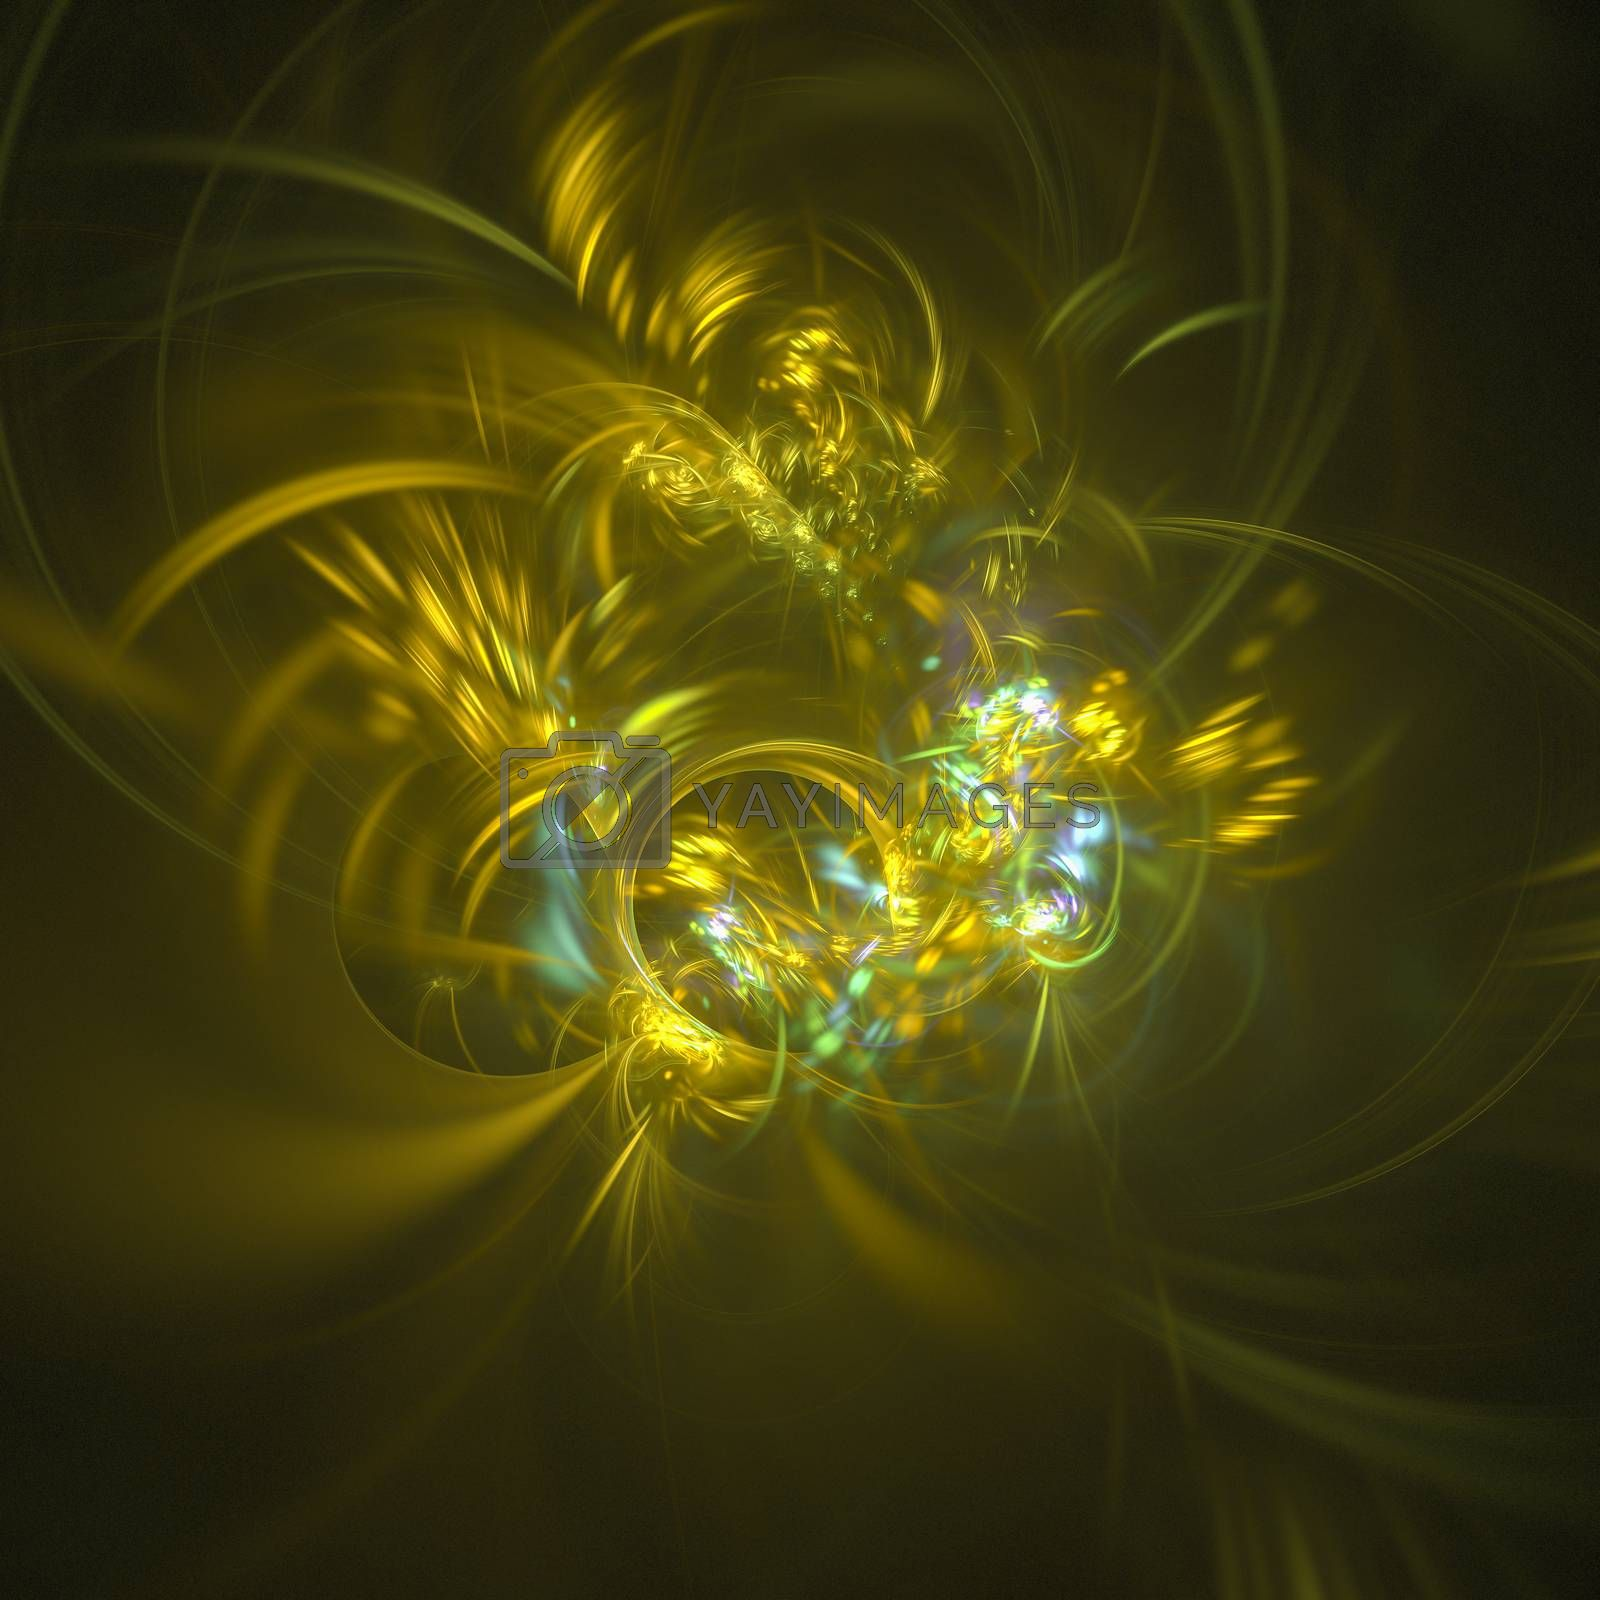 Abstract fractal background. Space and science abstract texture, 3D illustration